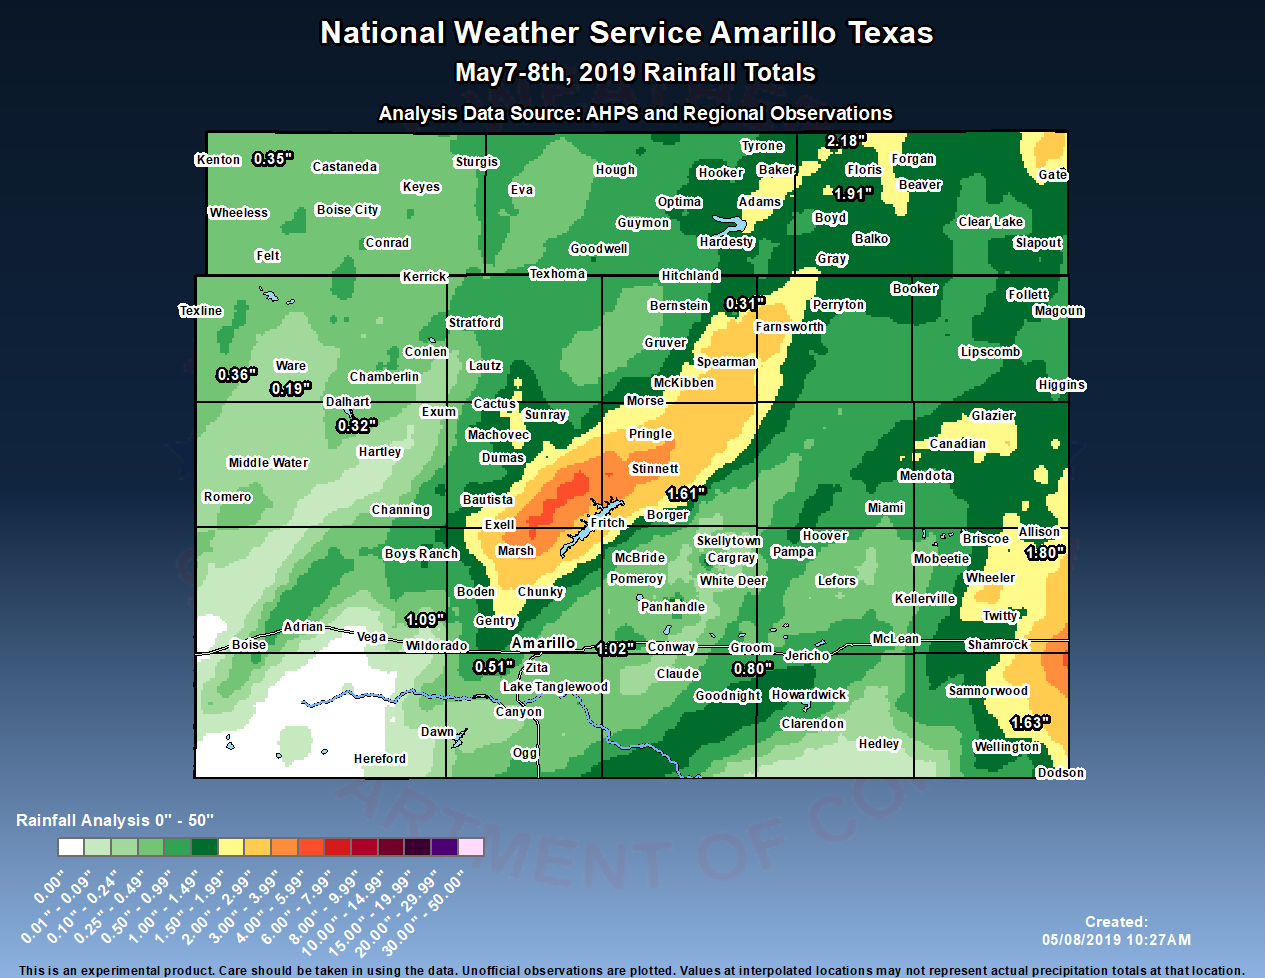 Rainfall reports and estimates from May 7th